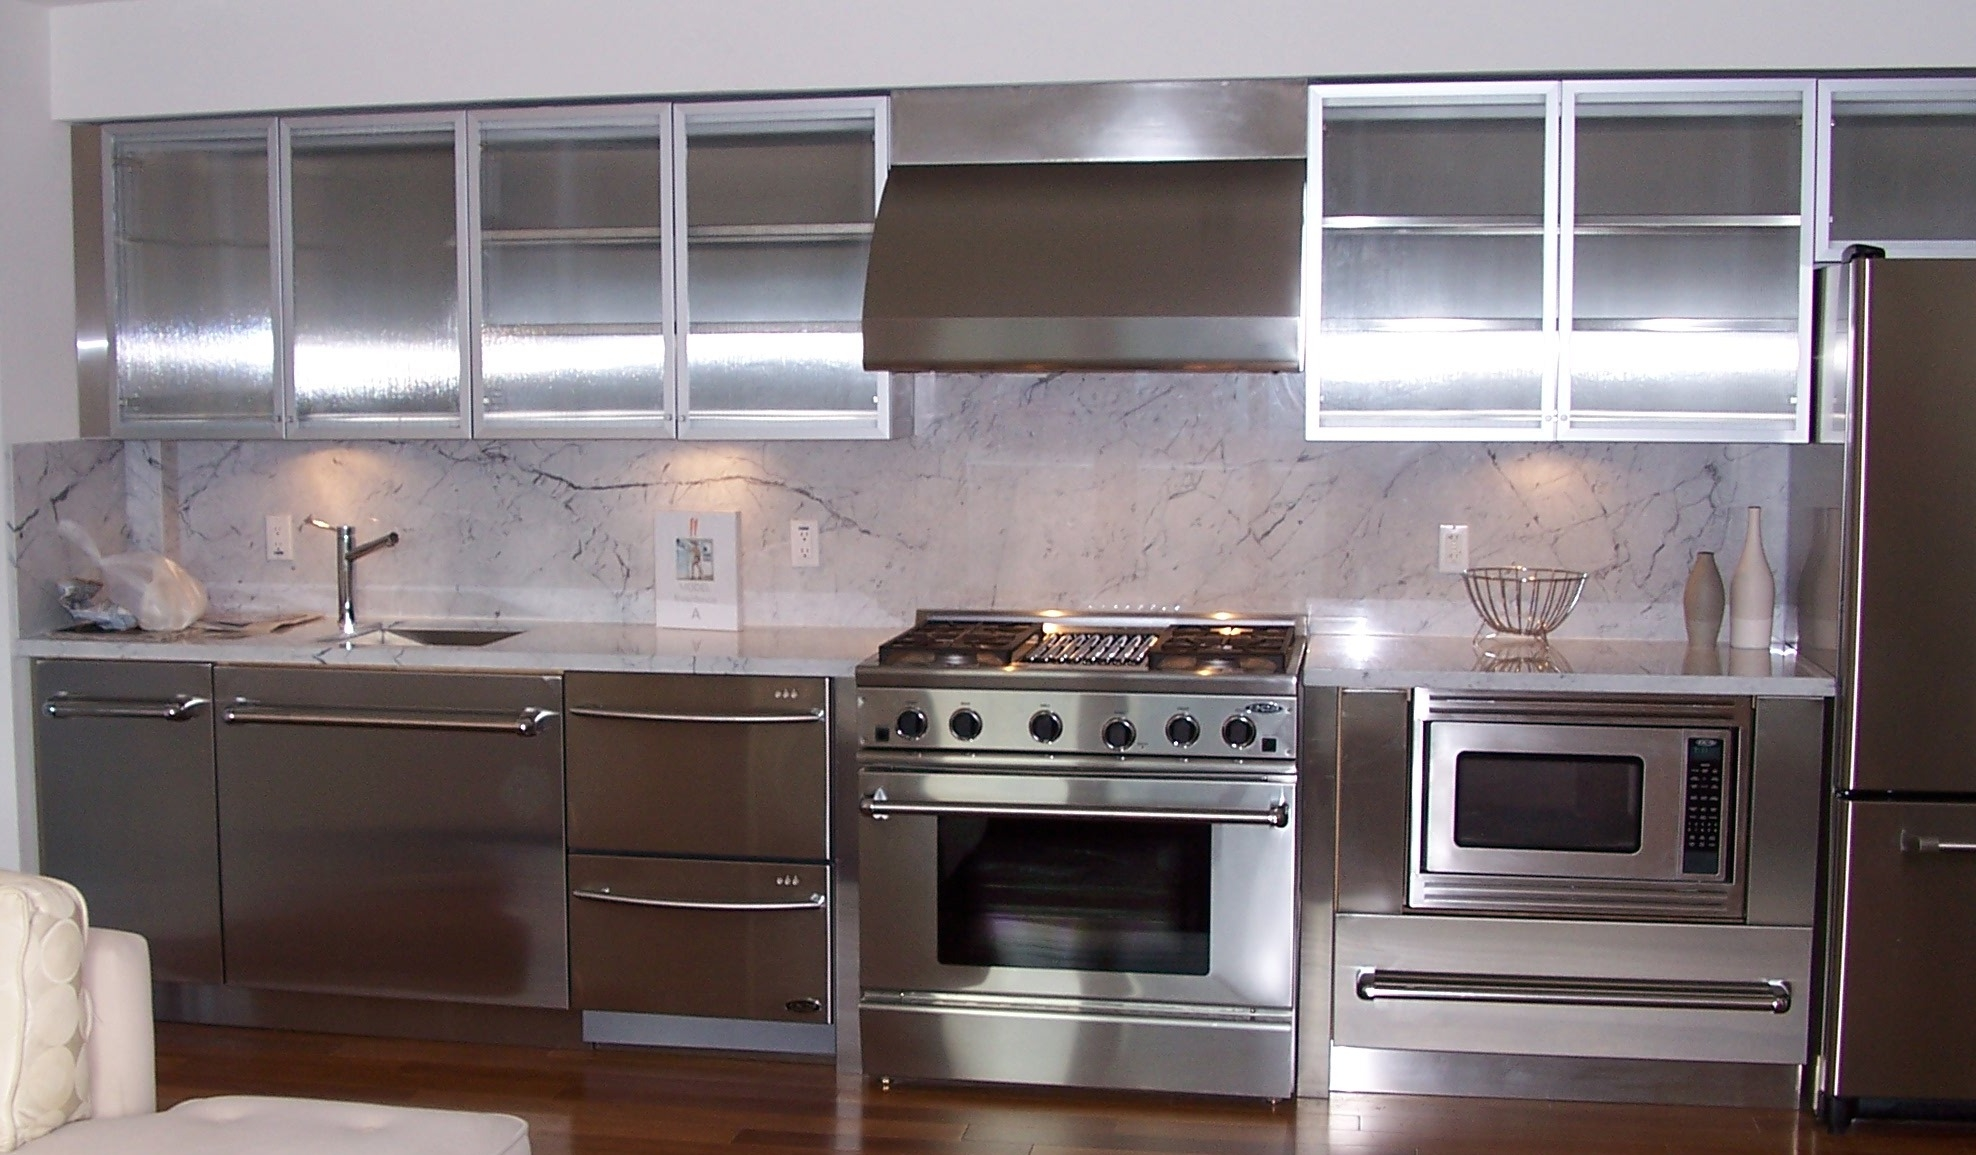 Stainless Steel Wall Cabinets Kitchen1976 X 1155